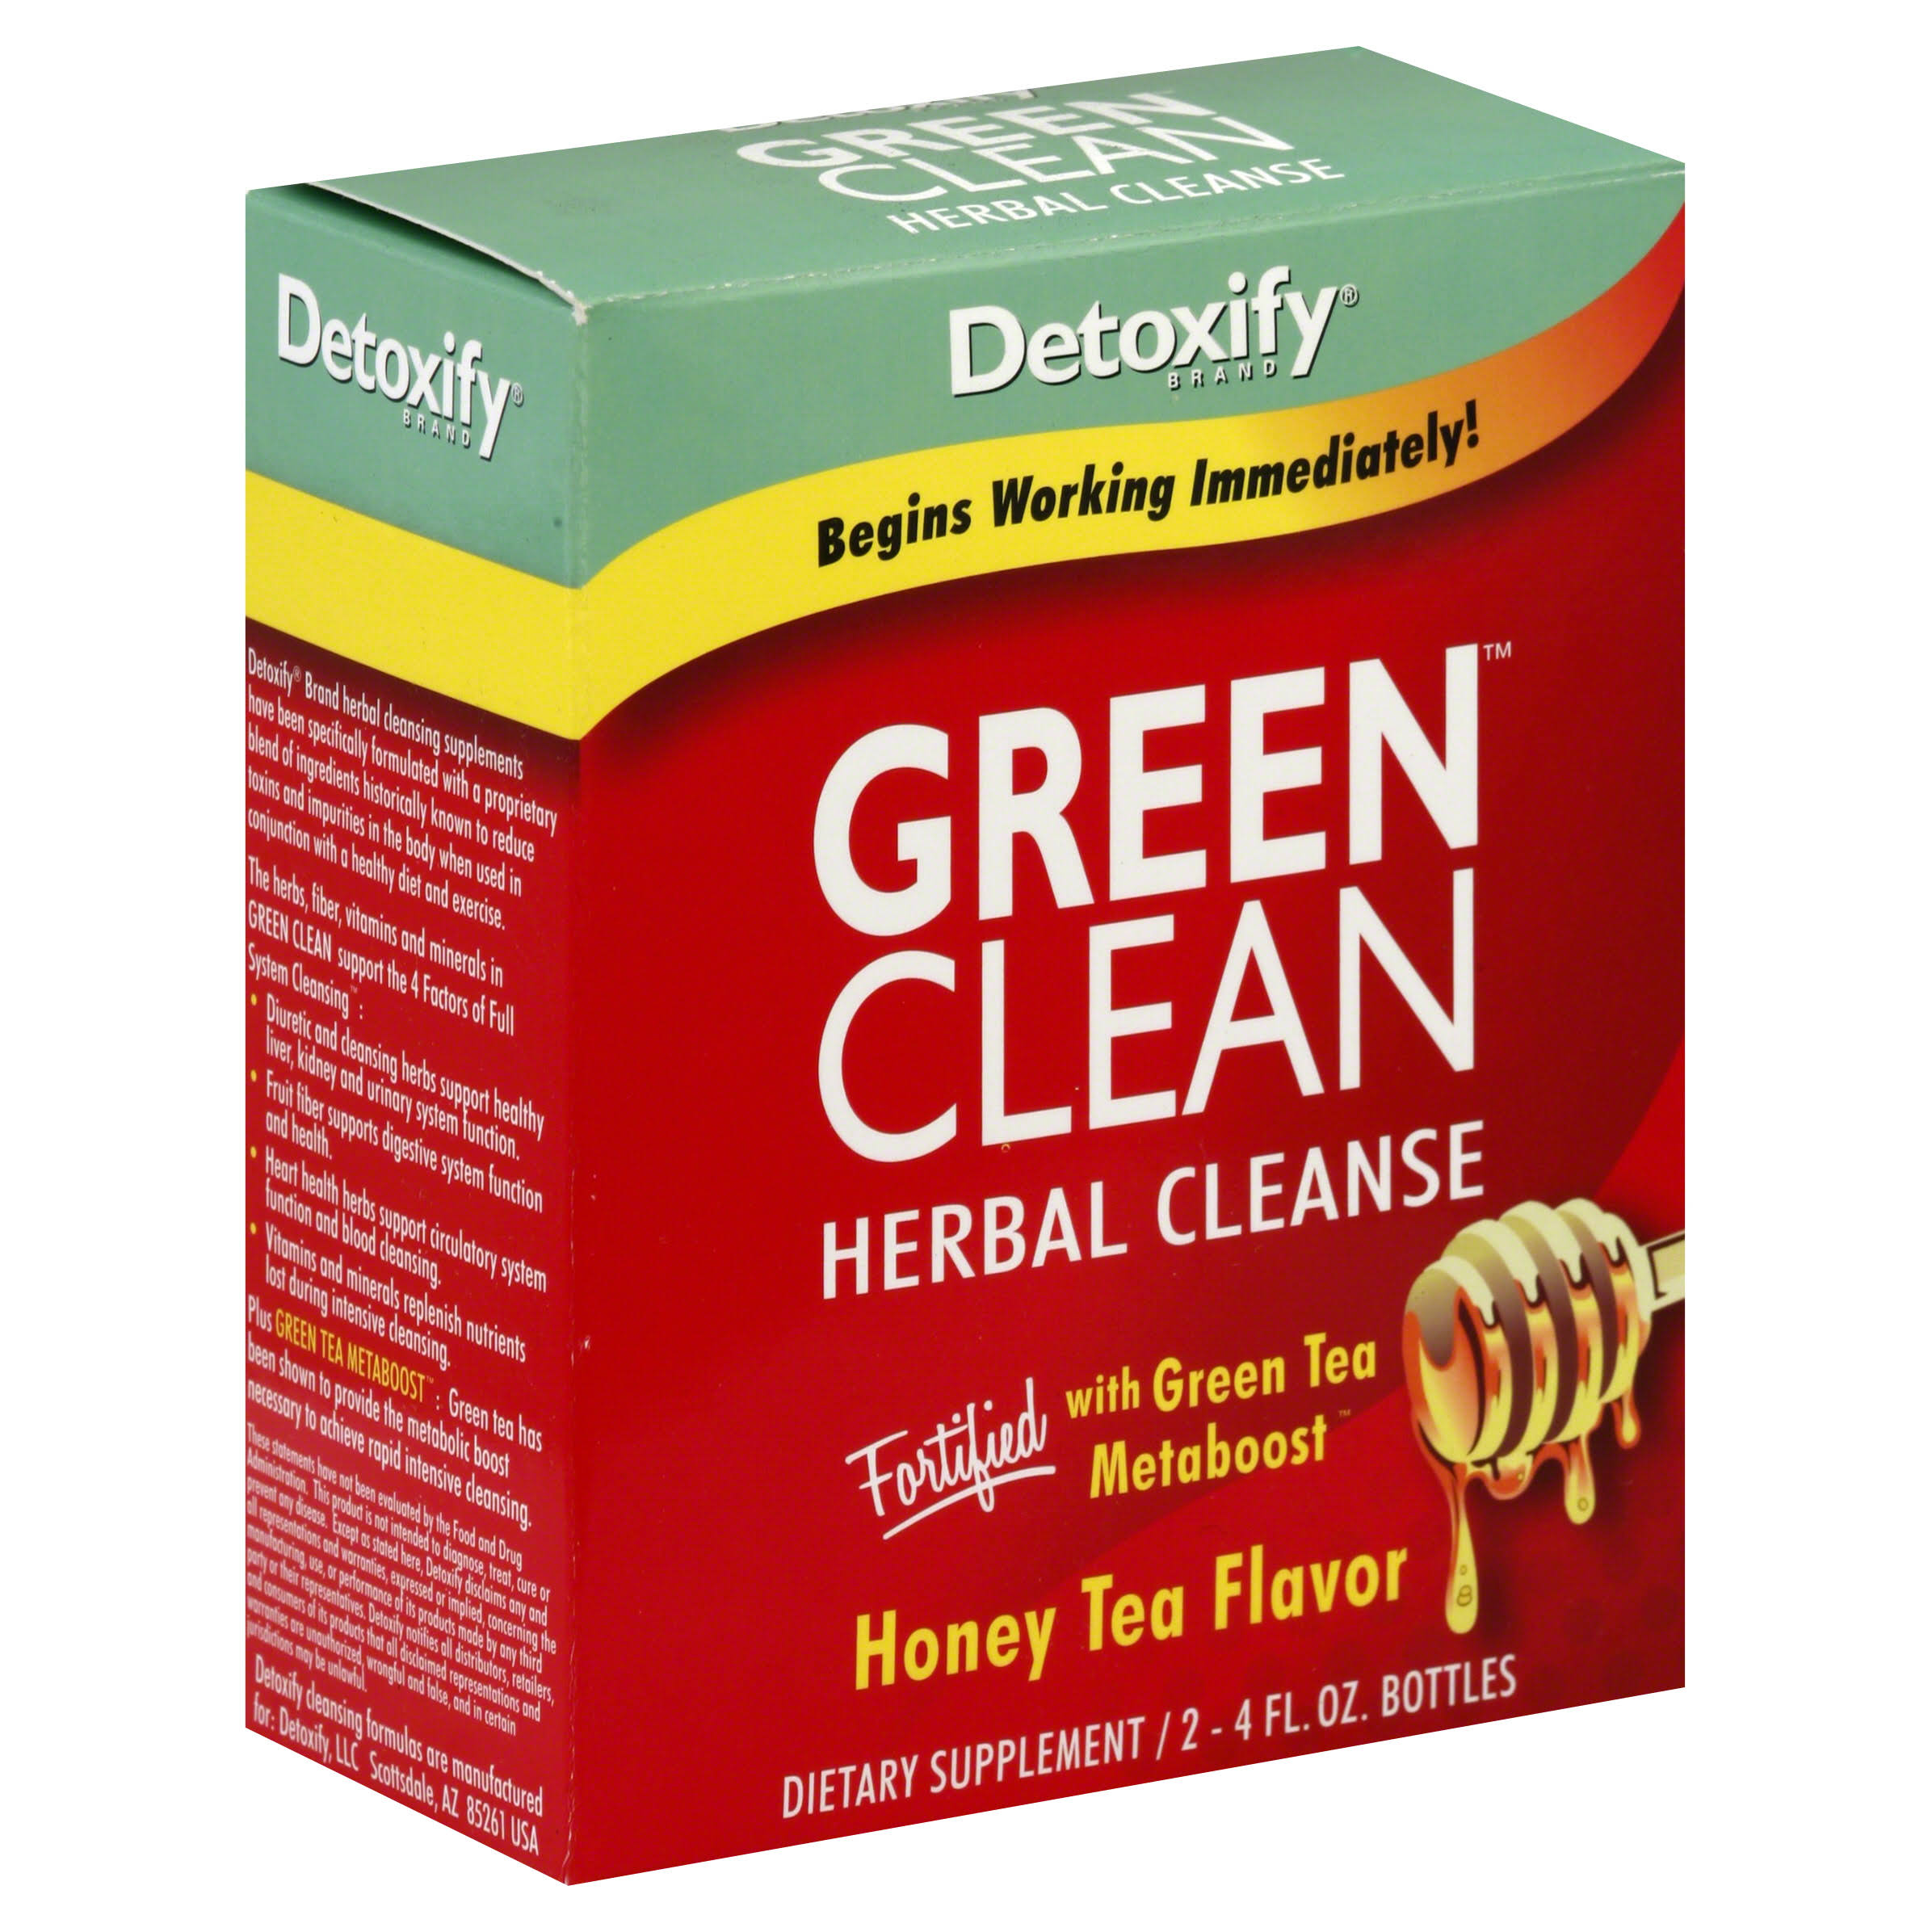 Detoxify Green Clean Herbal Cleanse - Honey Tea, 8FL. Oz